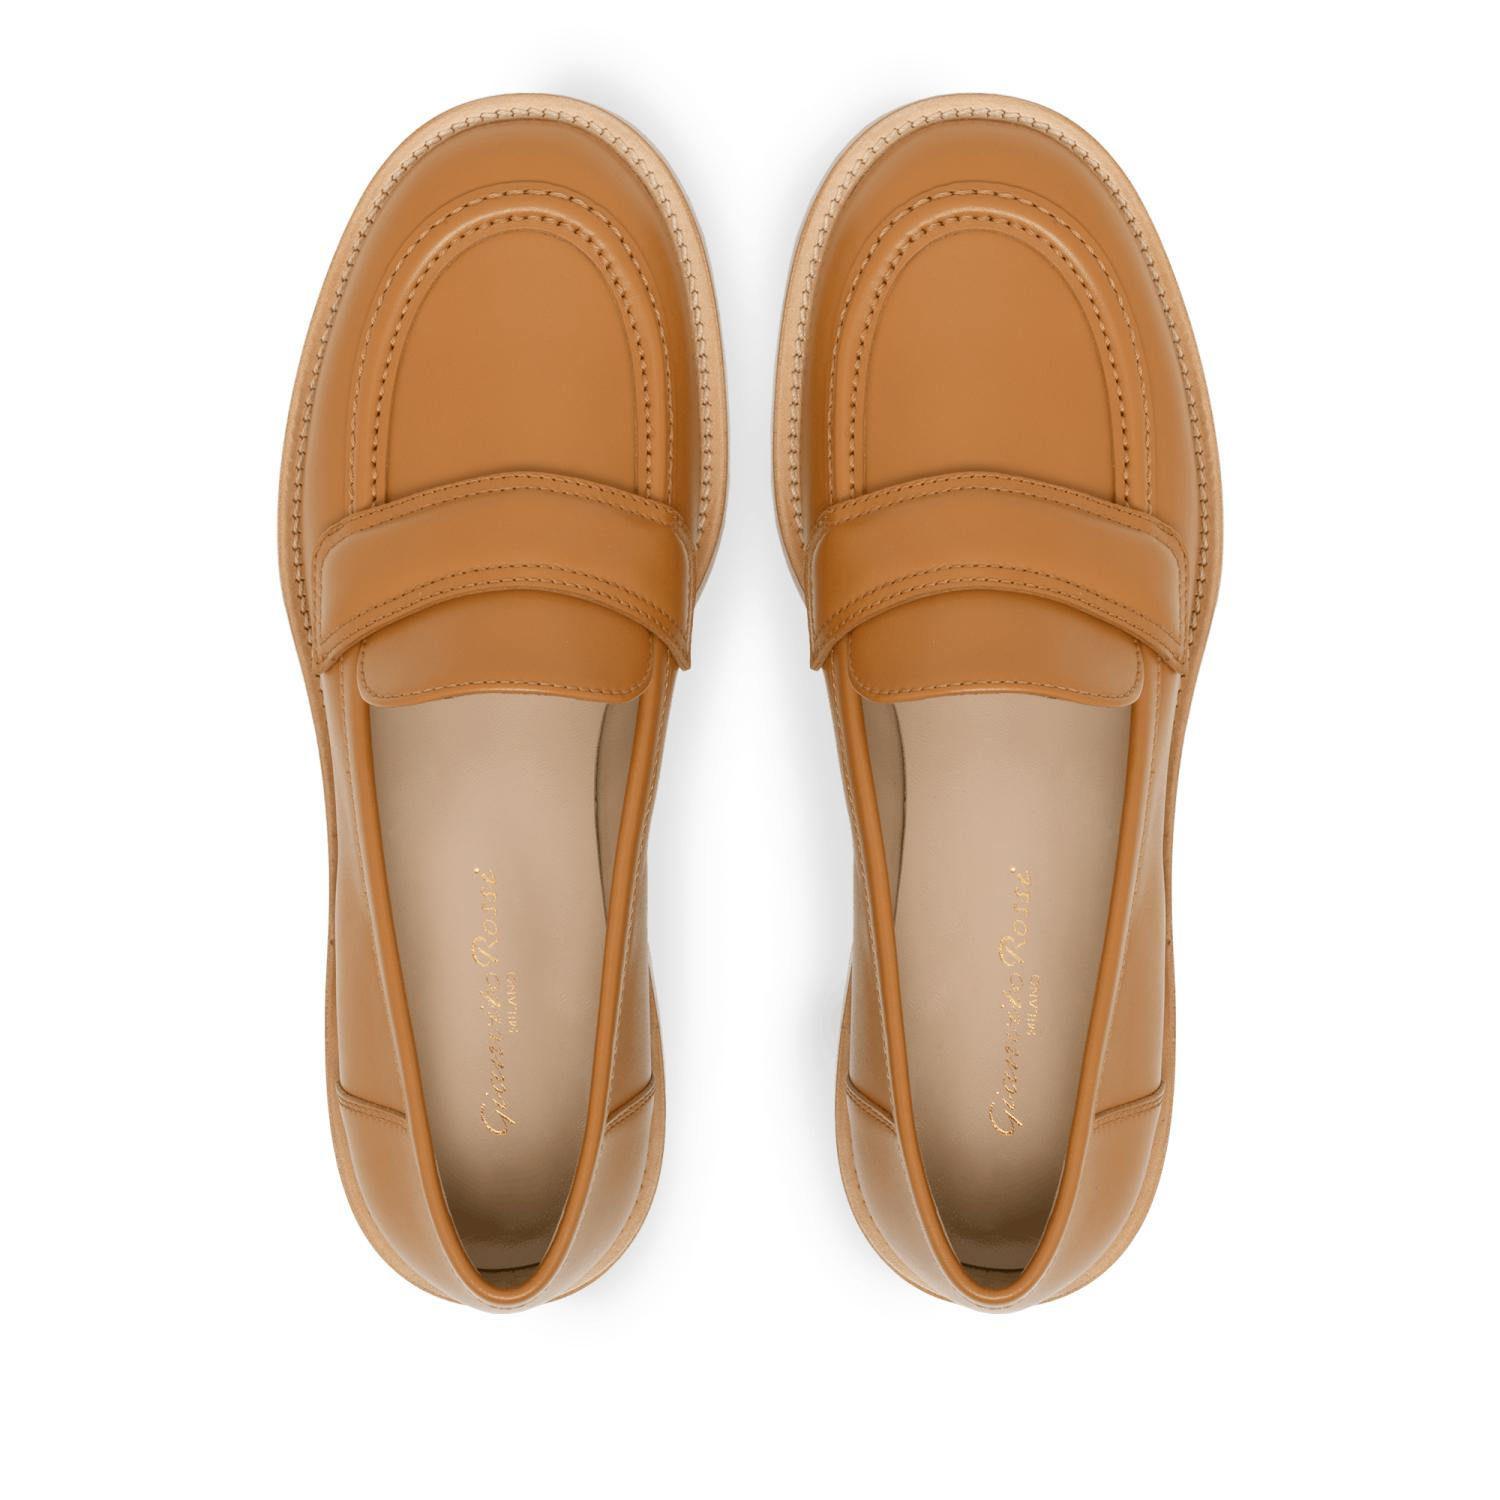 Womens Gianvito Rossi Flats | Bedford Sienna Brown